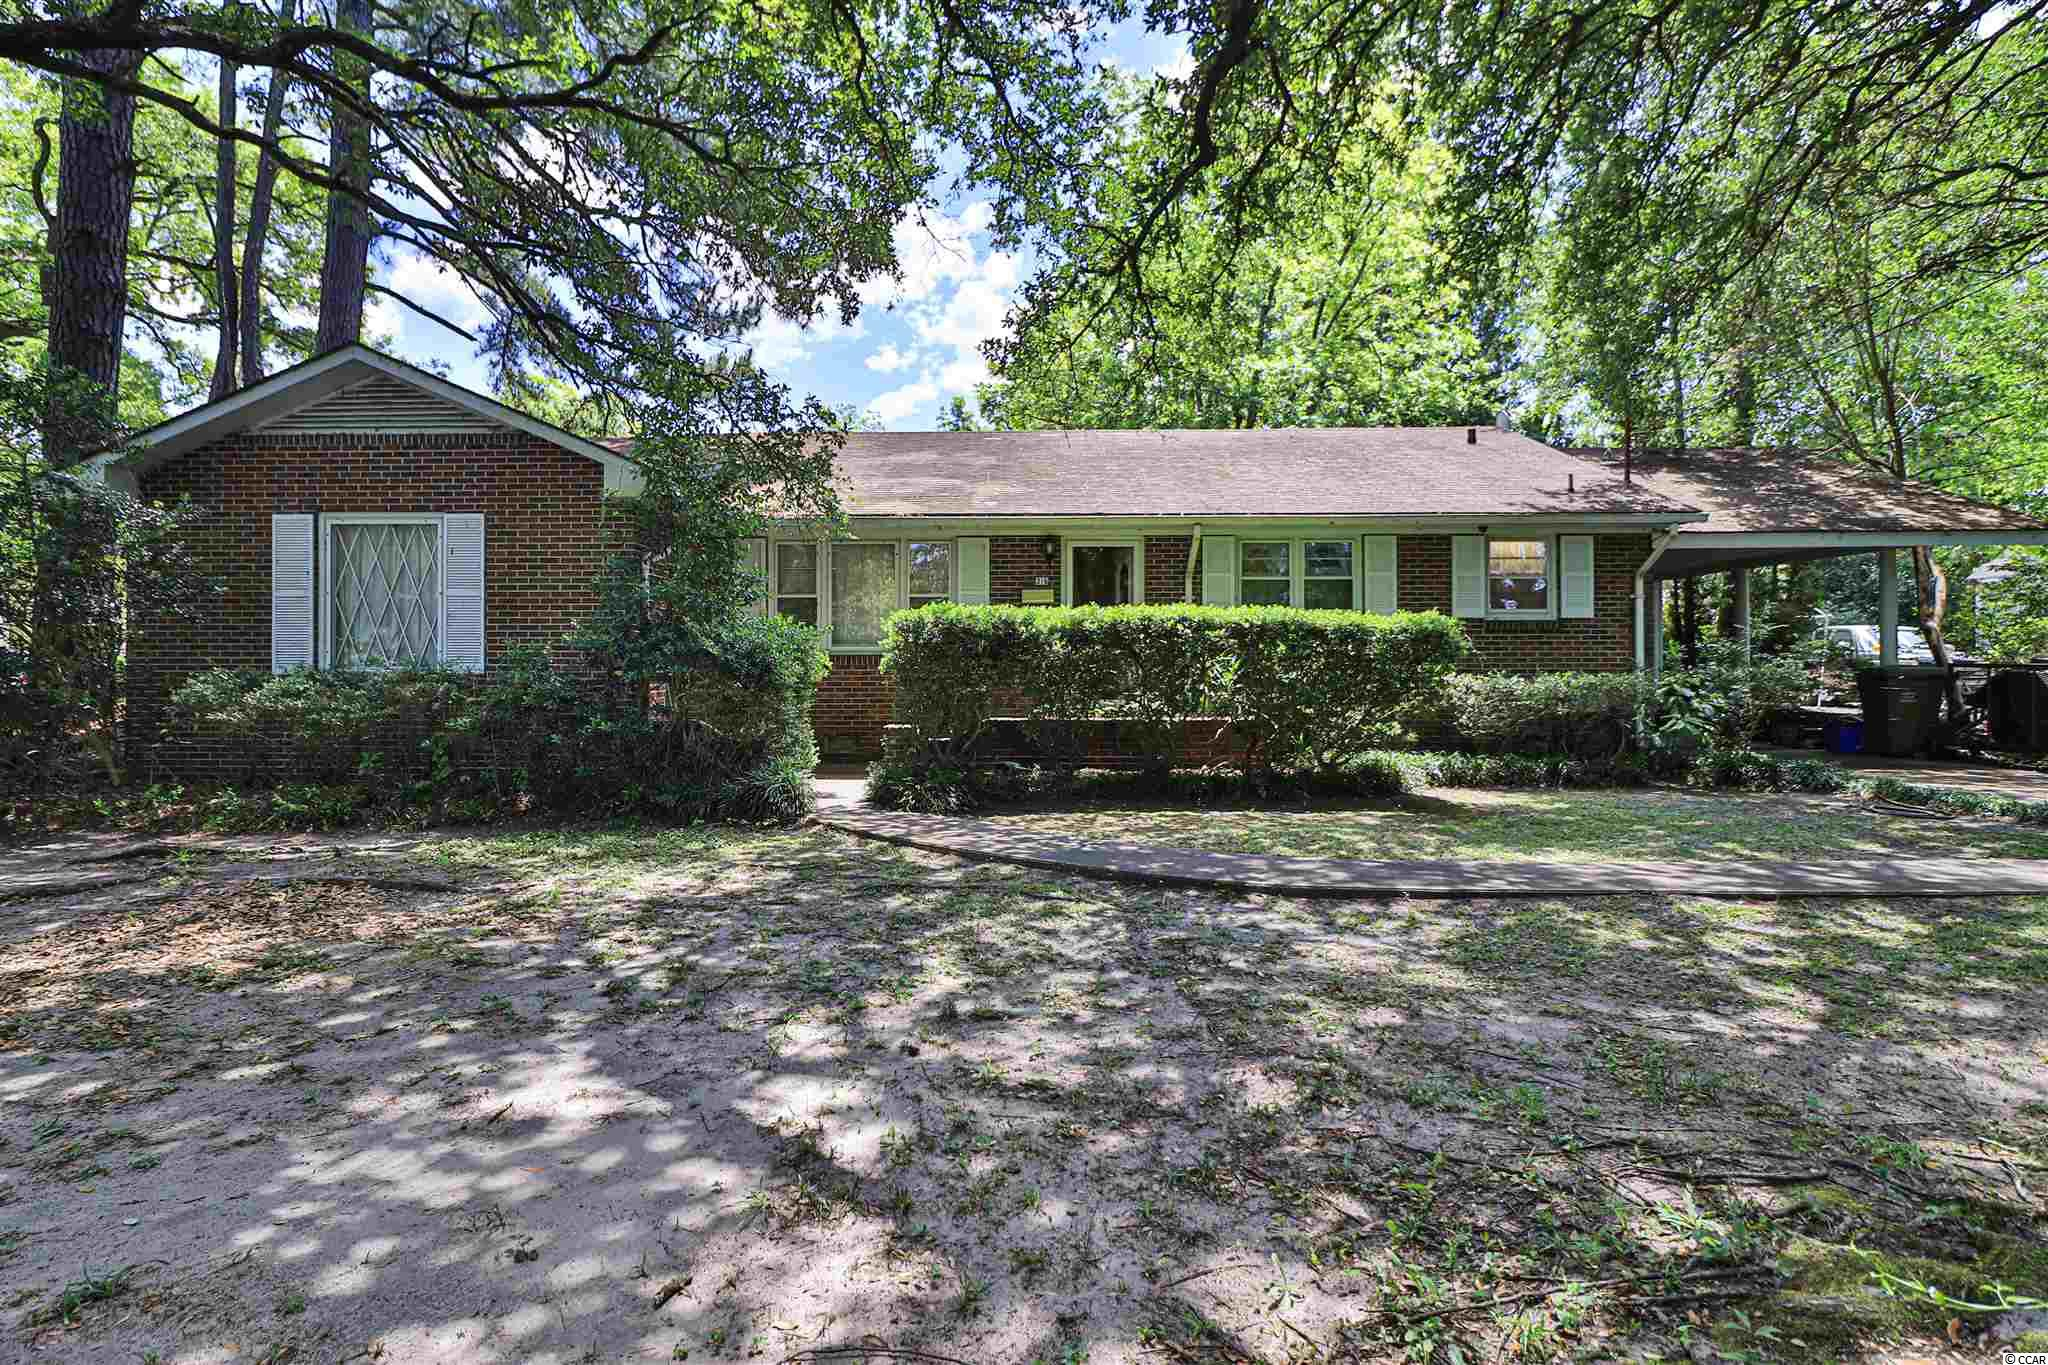 This is the quintessential brick ranch on the corner lot that you've been looking for! It's recently professionally cleaned and ready for its new owner. This large 3 bedroom, 2 bathroom home is ready for a little elbow grease and TLC. It's perfect for a primary, secondary, or investment property. Just blocks from historic Georgetown riverfront, local shops, and grocery stores. Home is being sold as is! Schedule your showing today. Seller has 2 other properties in the area that can be sold together as a package -- ask your realtor for details!